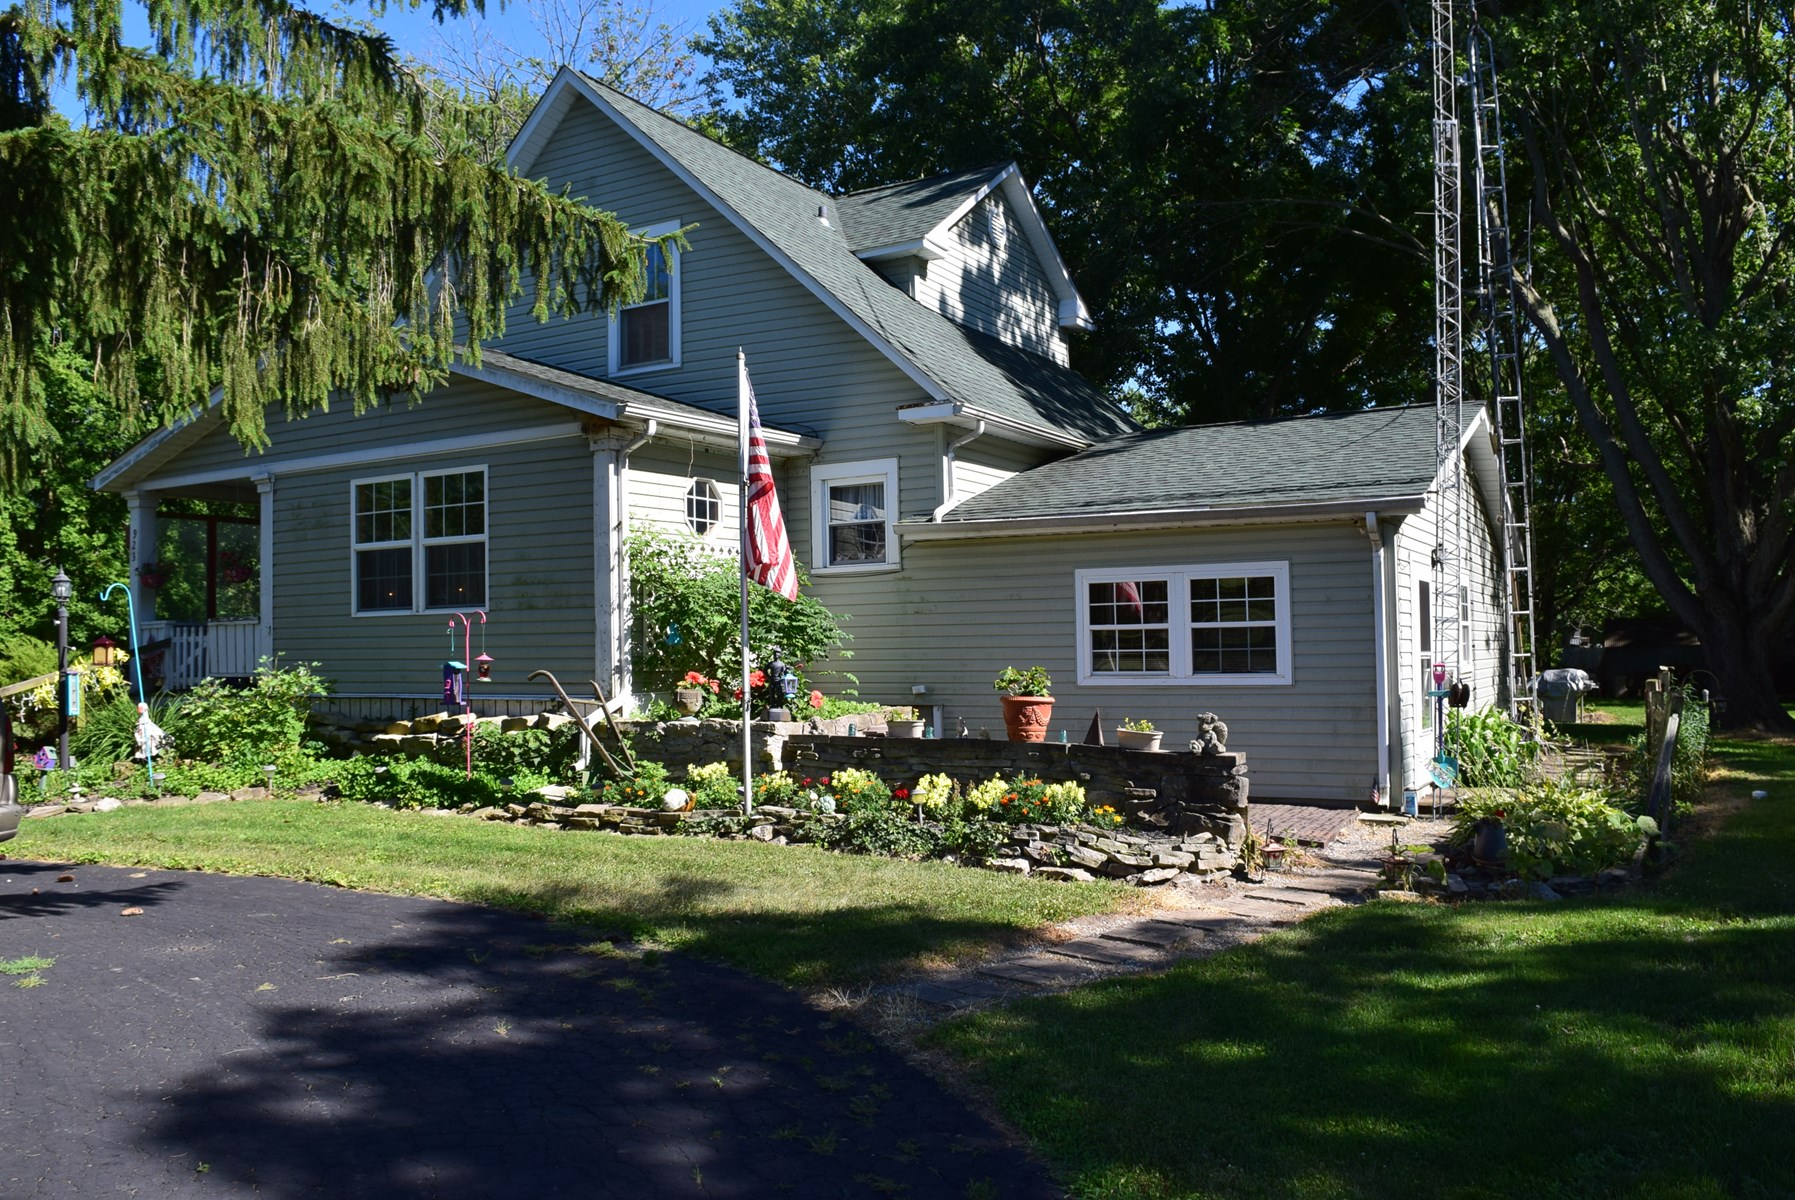 3 BR Home on 1.7 acres, Marion, Ohio